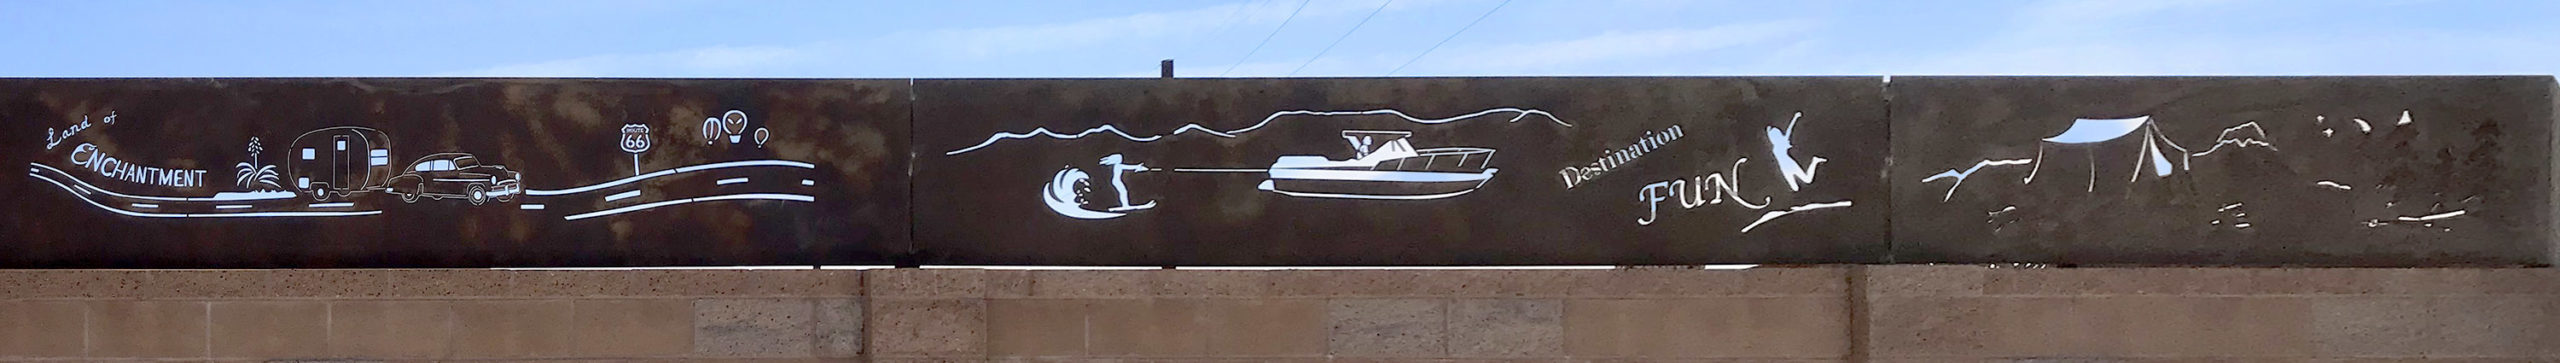 Whimsical adventure-themed cutout on our exterior wall